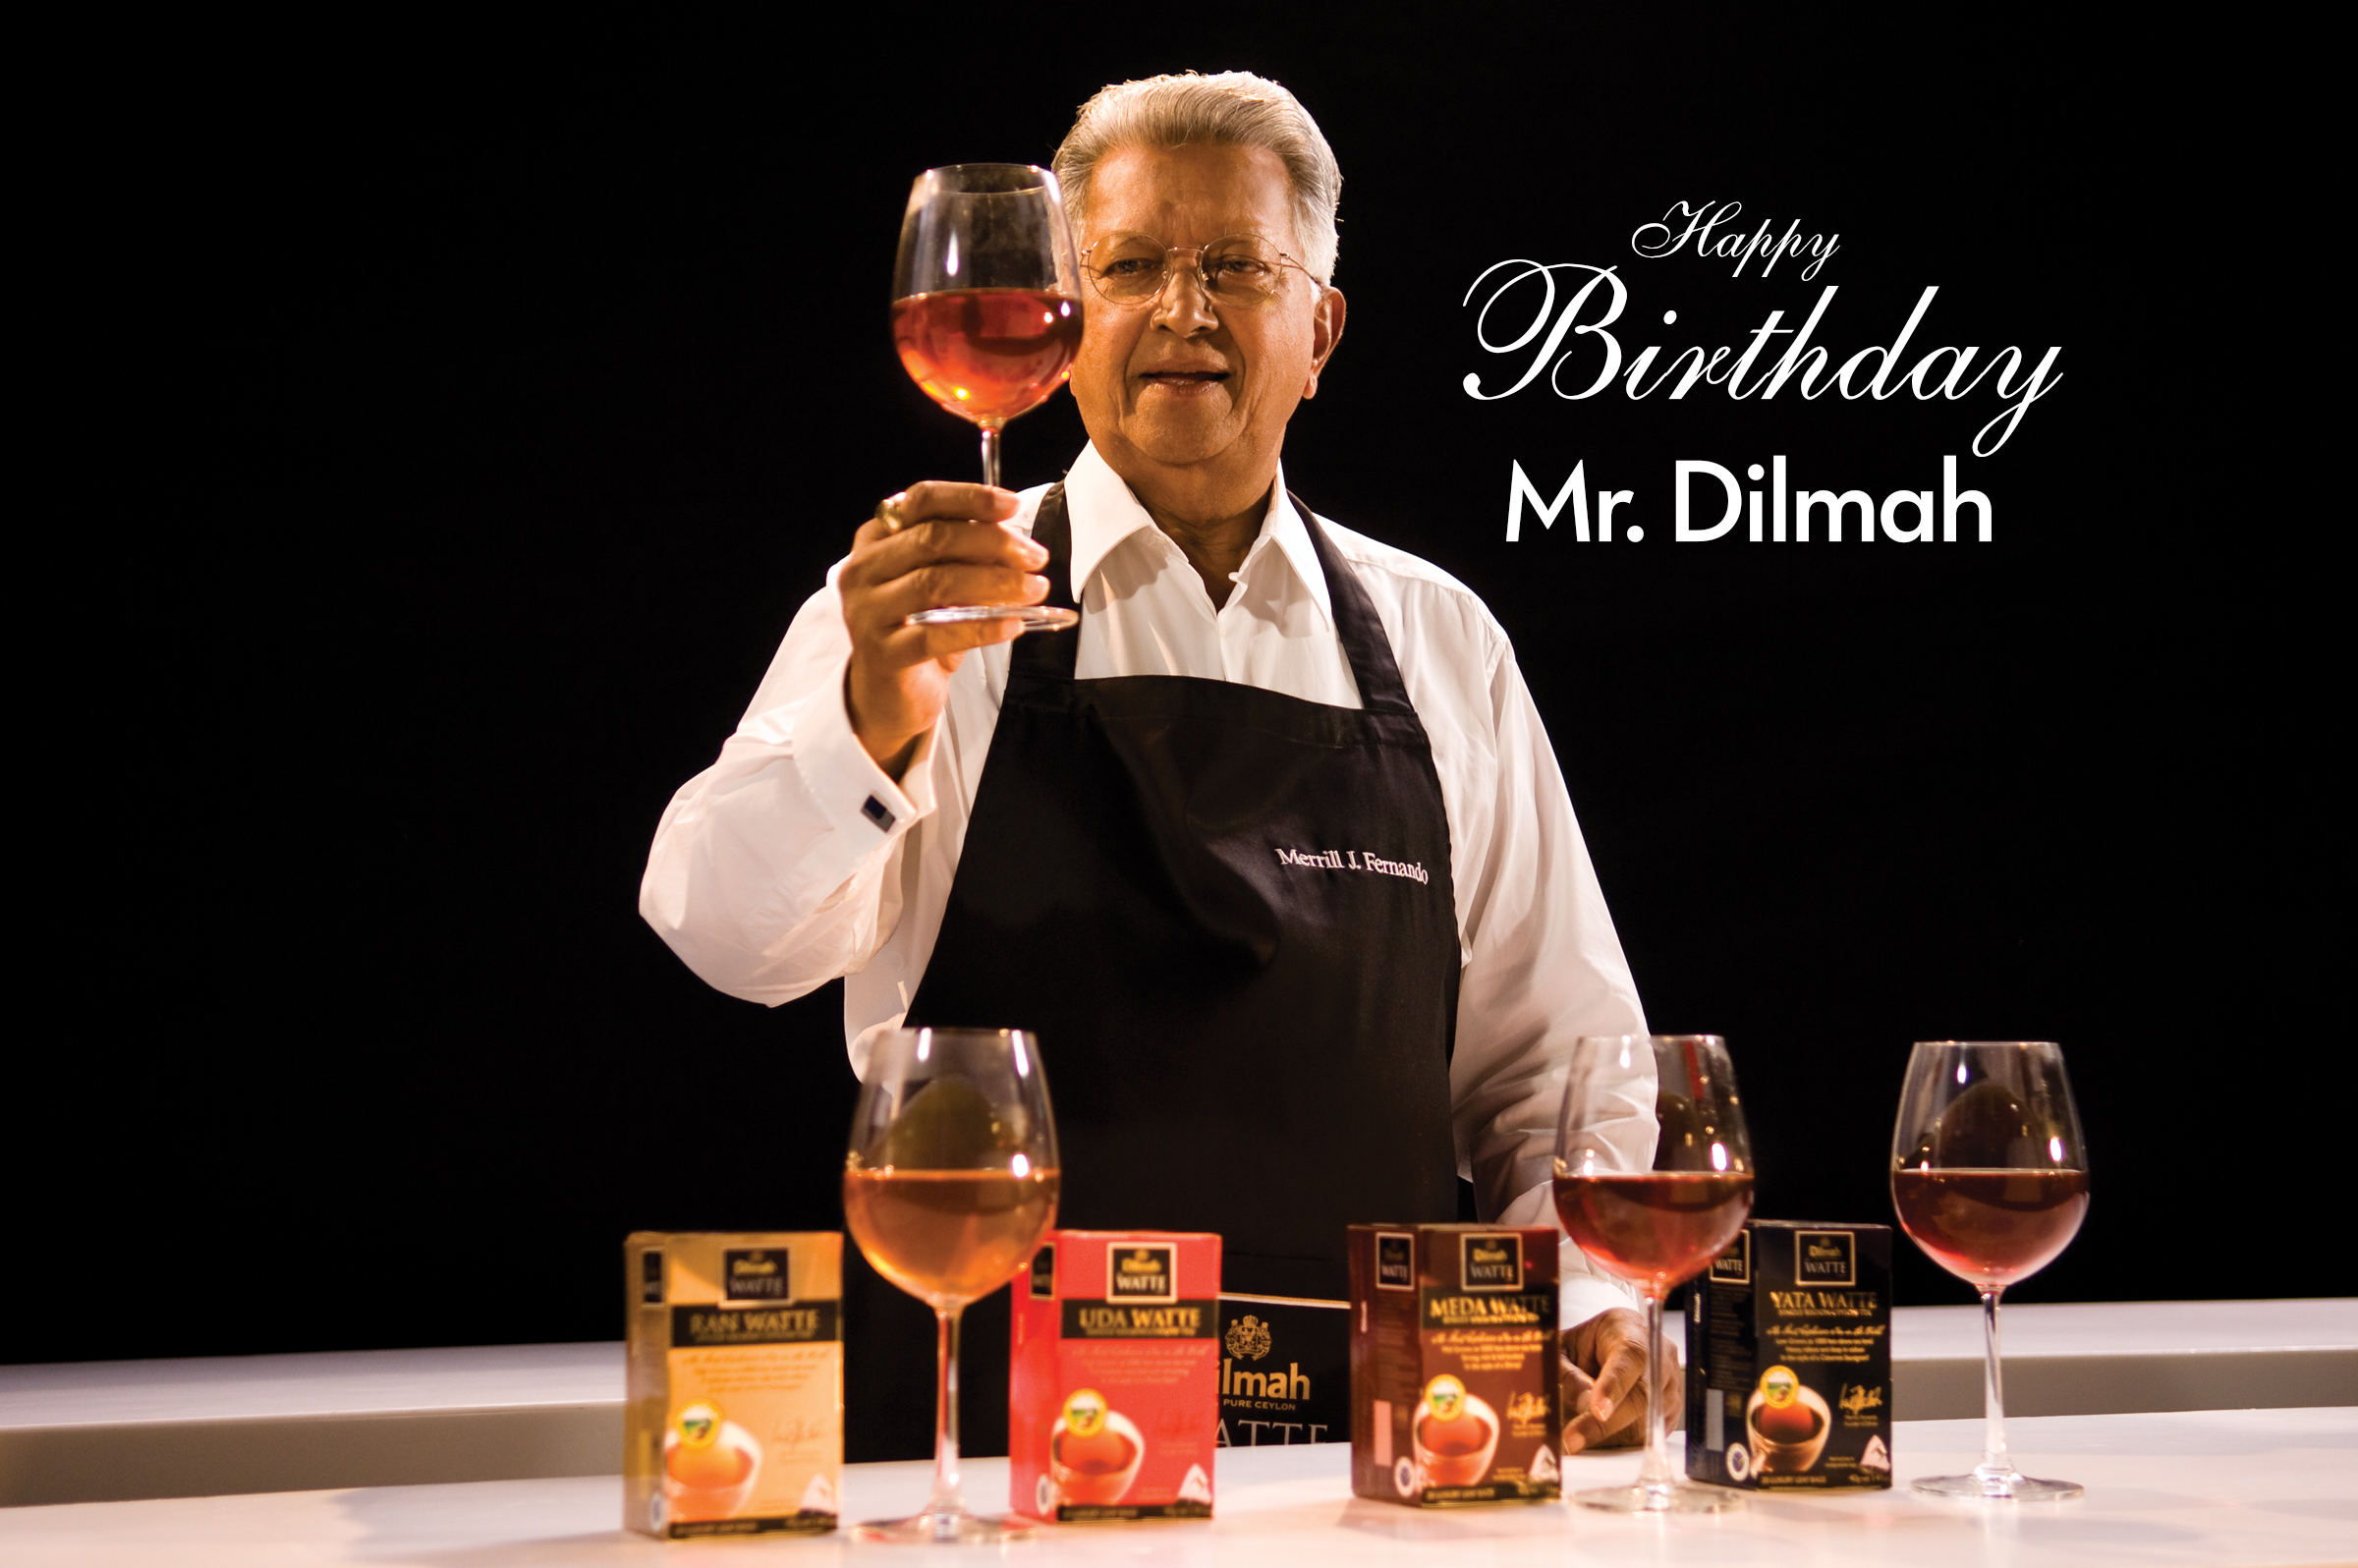 Birthday Wishes from the Global Dilmah Family